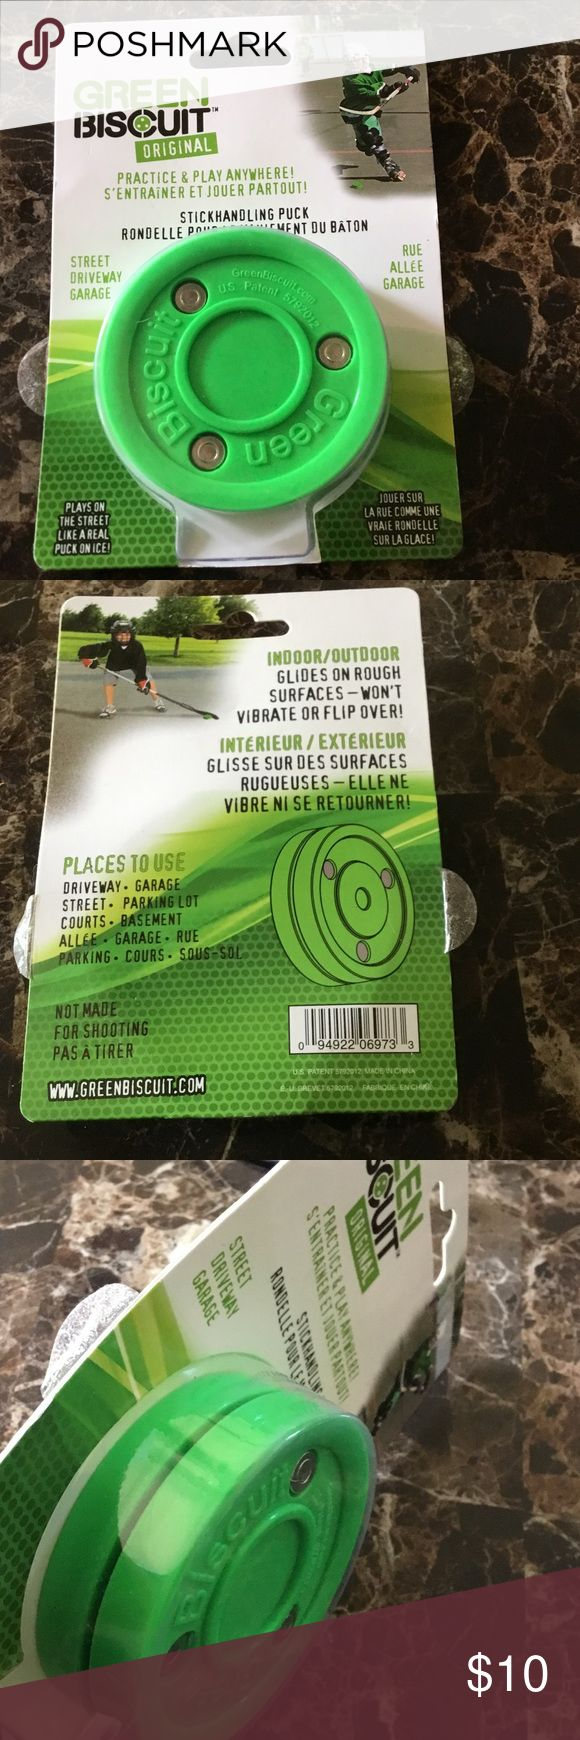 The Green Biscuit Sniper Hockey Puck New The Green Biscuit Sniper puck is an off-ice training hockey puck that will help you and your team develop passing, stickhandling, and shooting skills.. puck weighs about about 5oz... New in sealed package. green biscuit Accessories